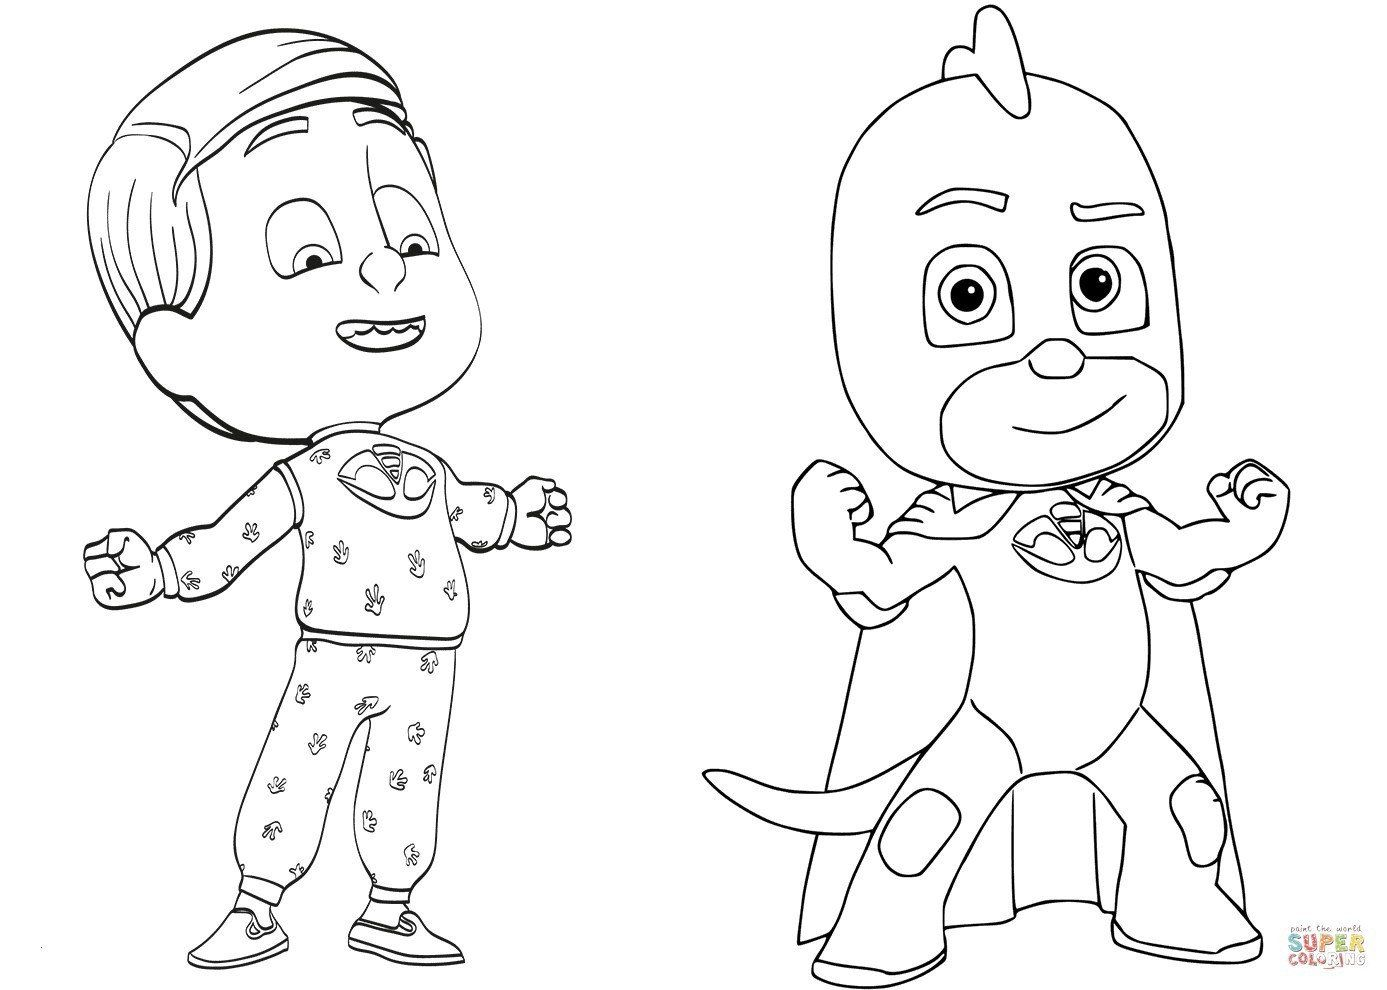 Pin on Coloring page ideas printable